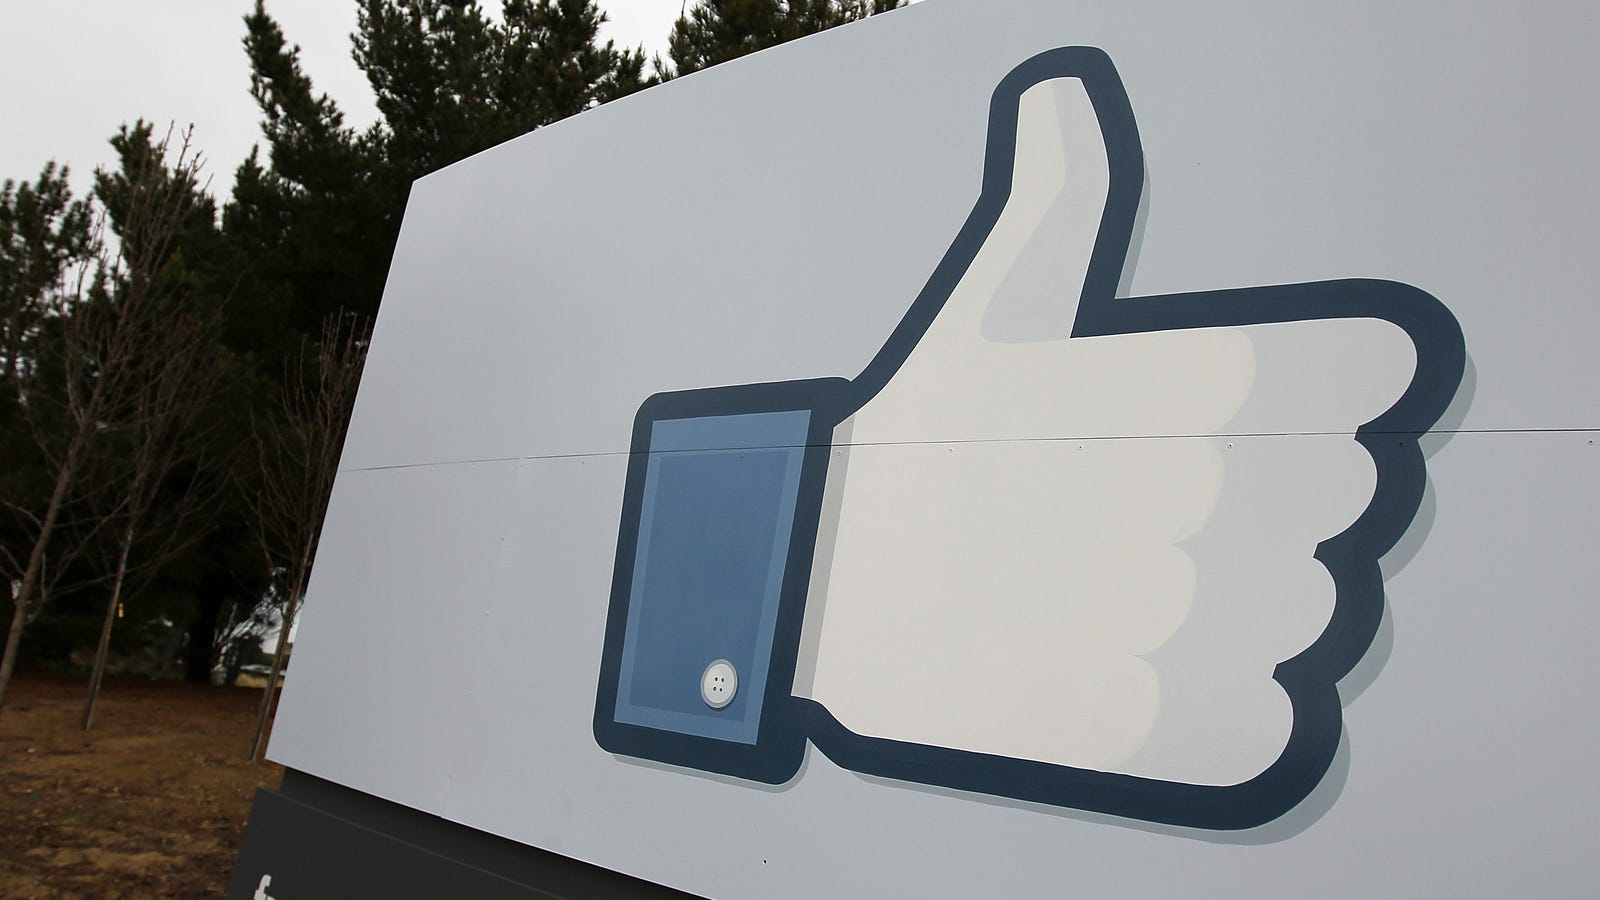 Facebook's Newest Testing Drops the Like Count, So Now How Will I Quantify My Self-Worth?